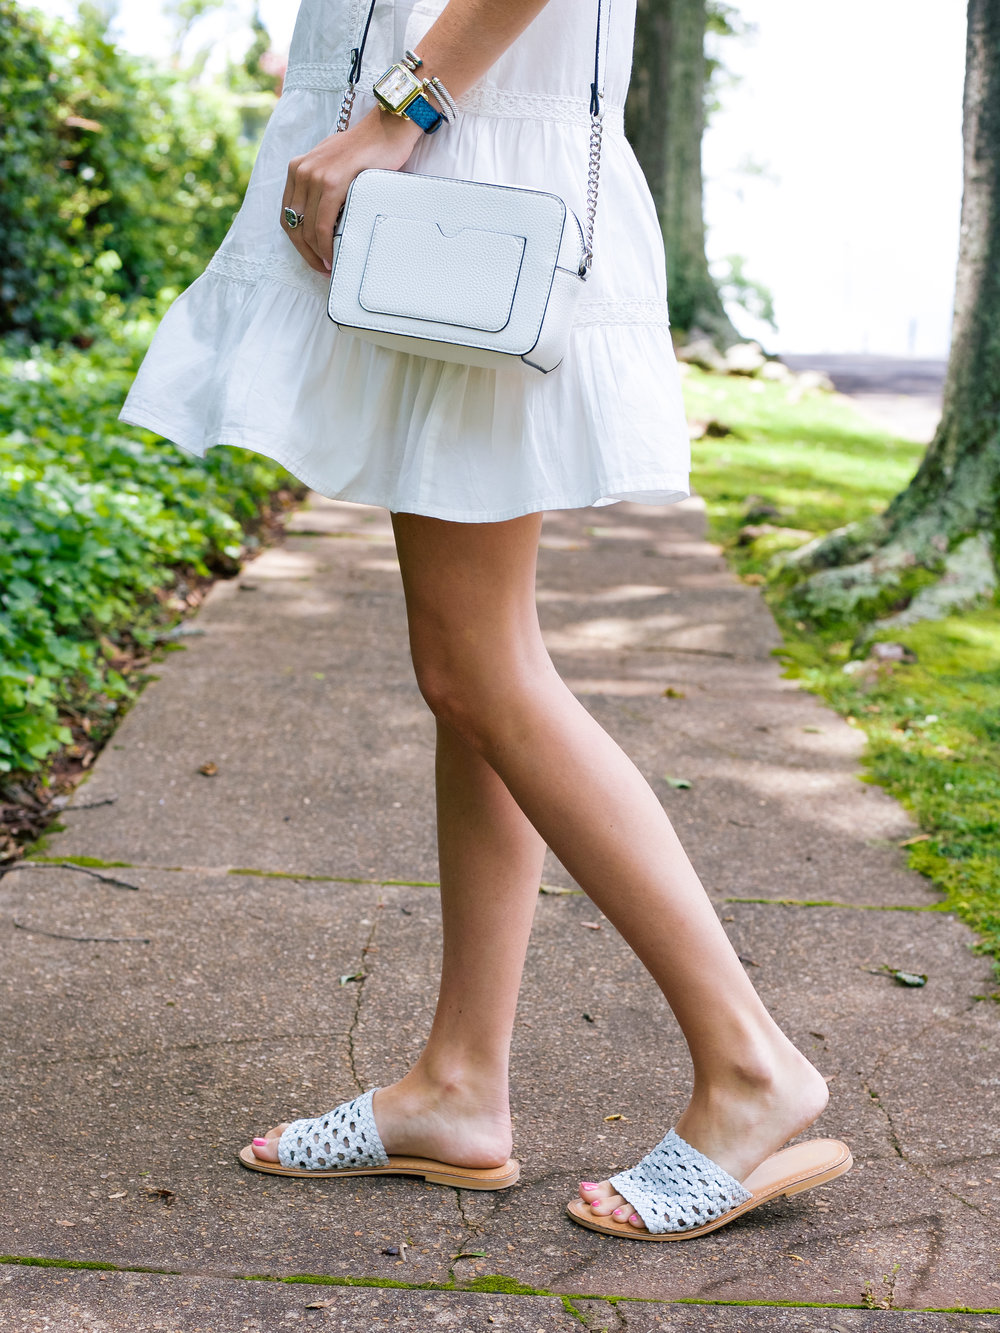 fashion blogger lcb style caroline bramlett asos summer white (106 of 118).jpg